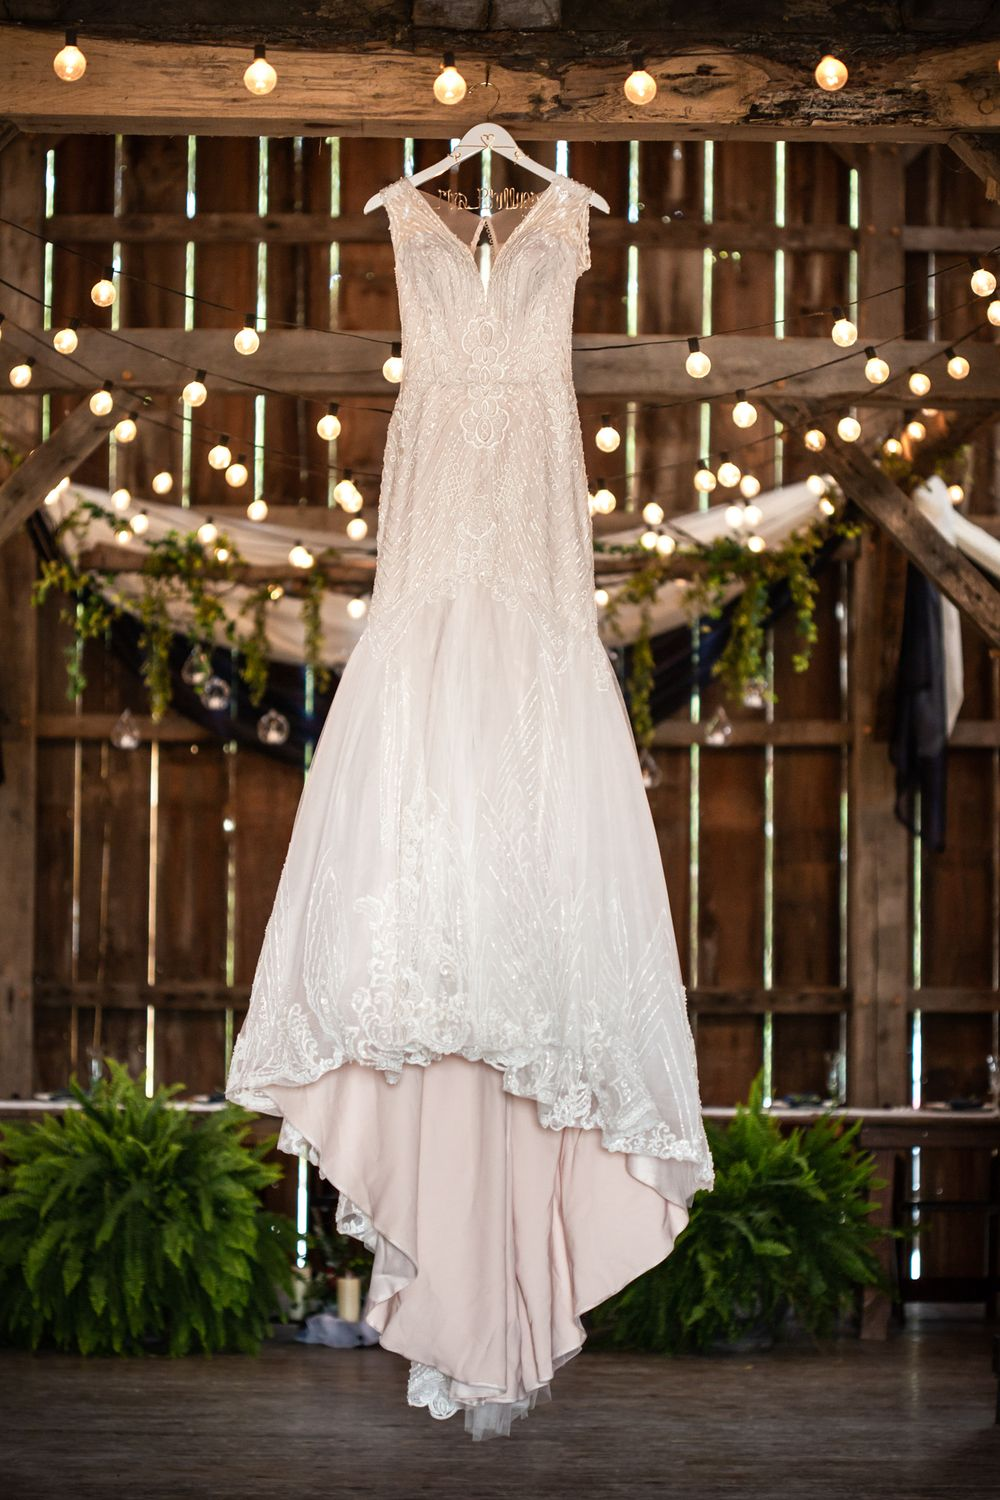 Elegant wedding gown hanging in Heritage Ranch